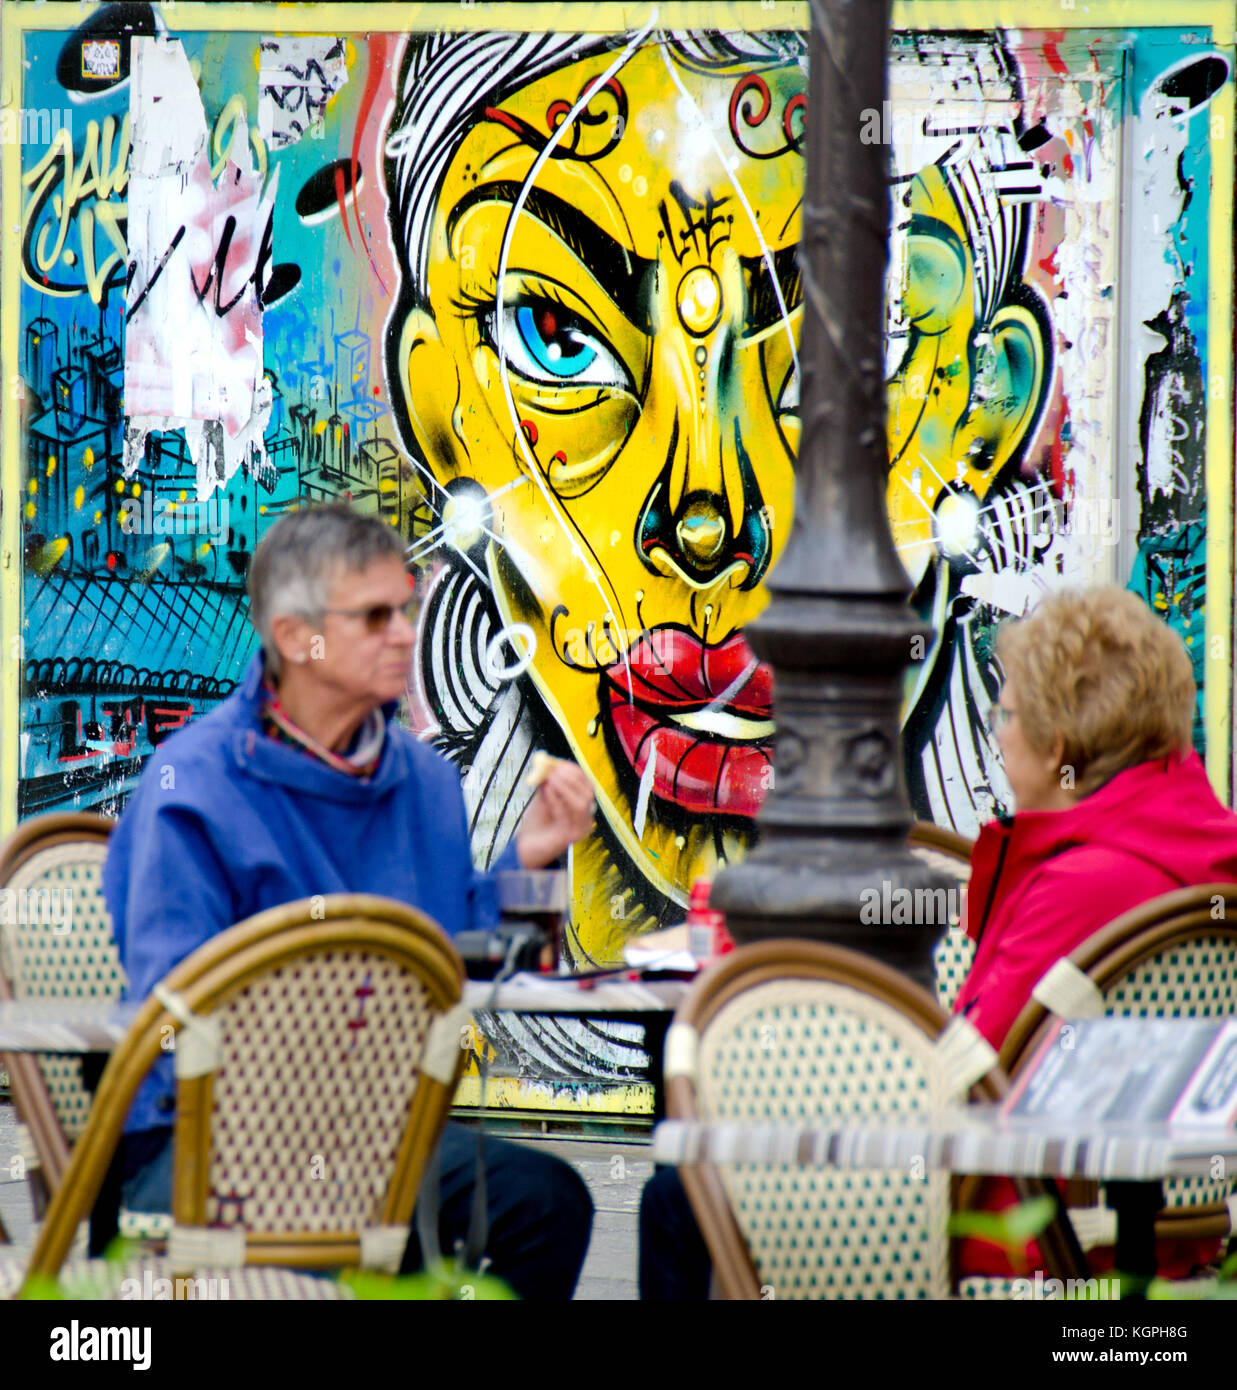 Paris, France. People sitting at a cafe table in Place Edmond Michelet with graffiti behind - Stock Image